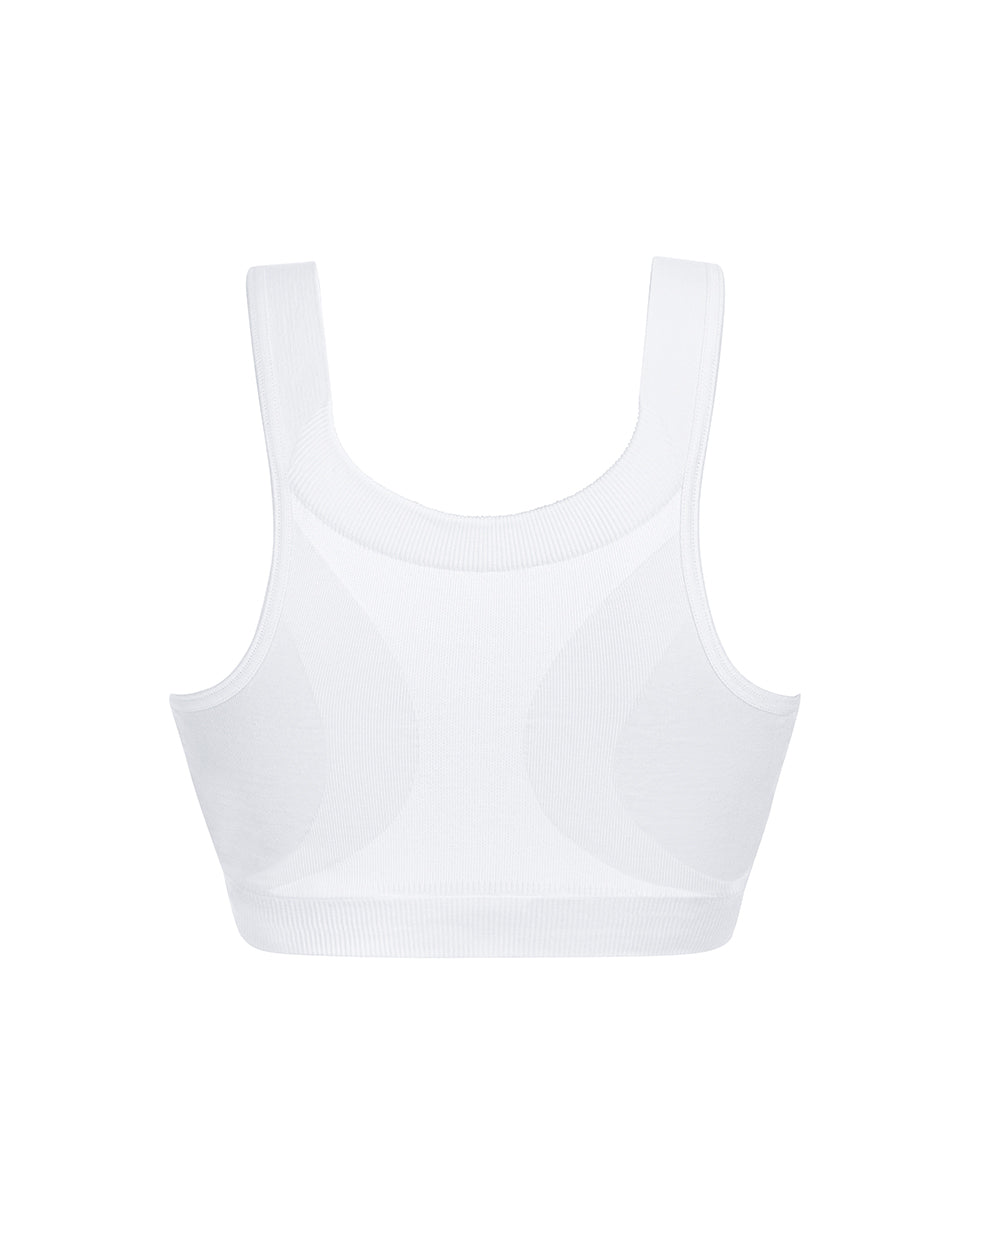 Theraport Post-Surgical Bra